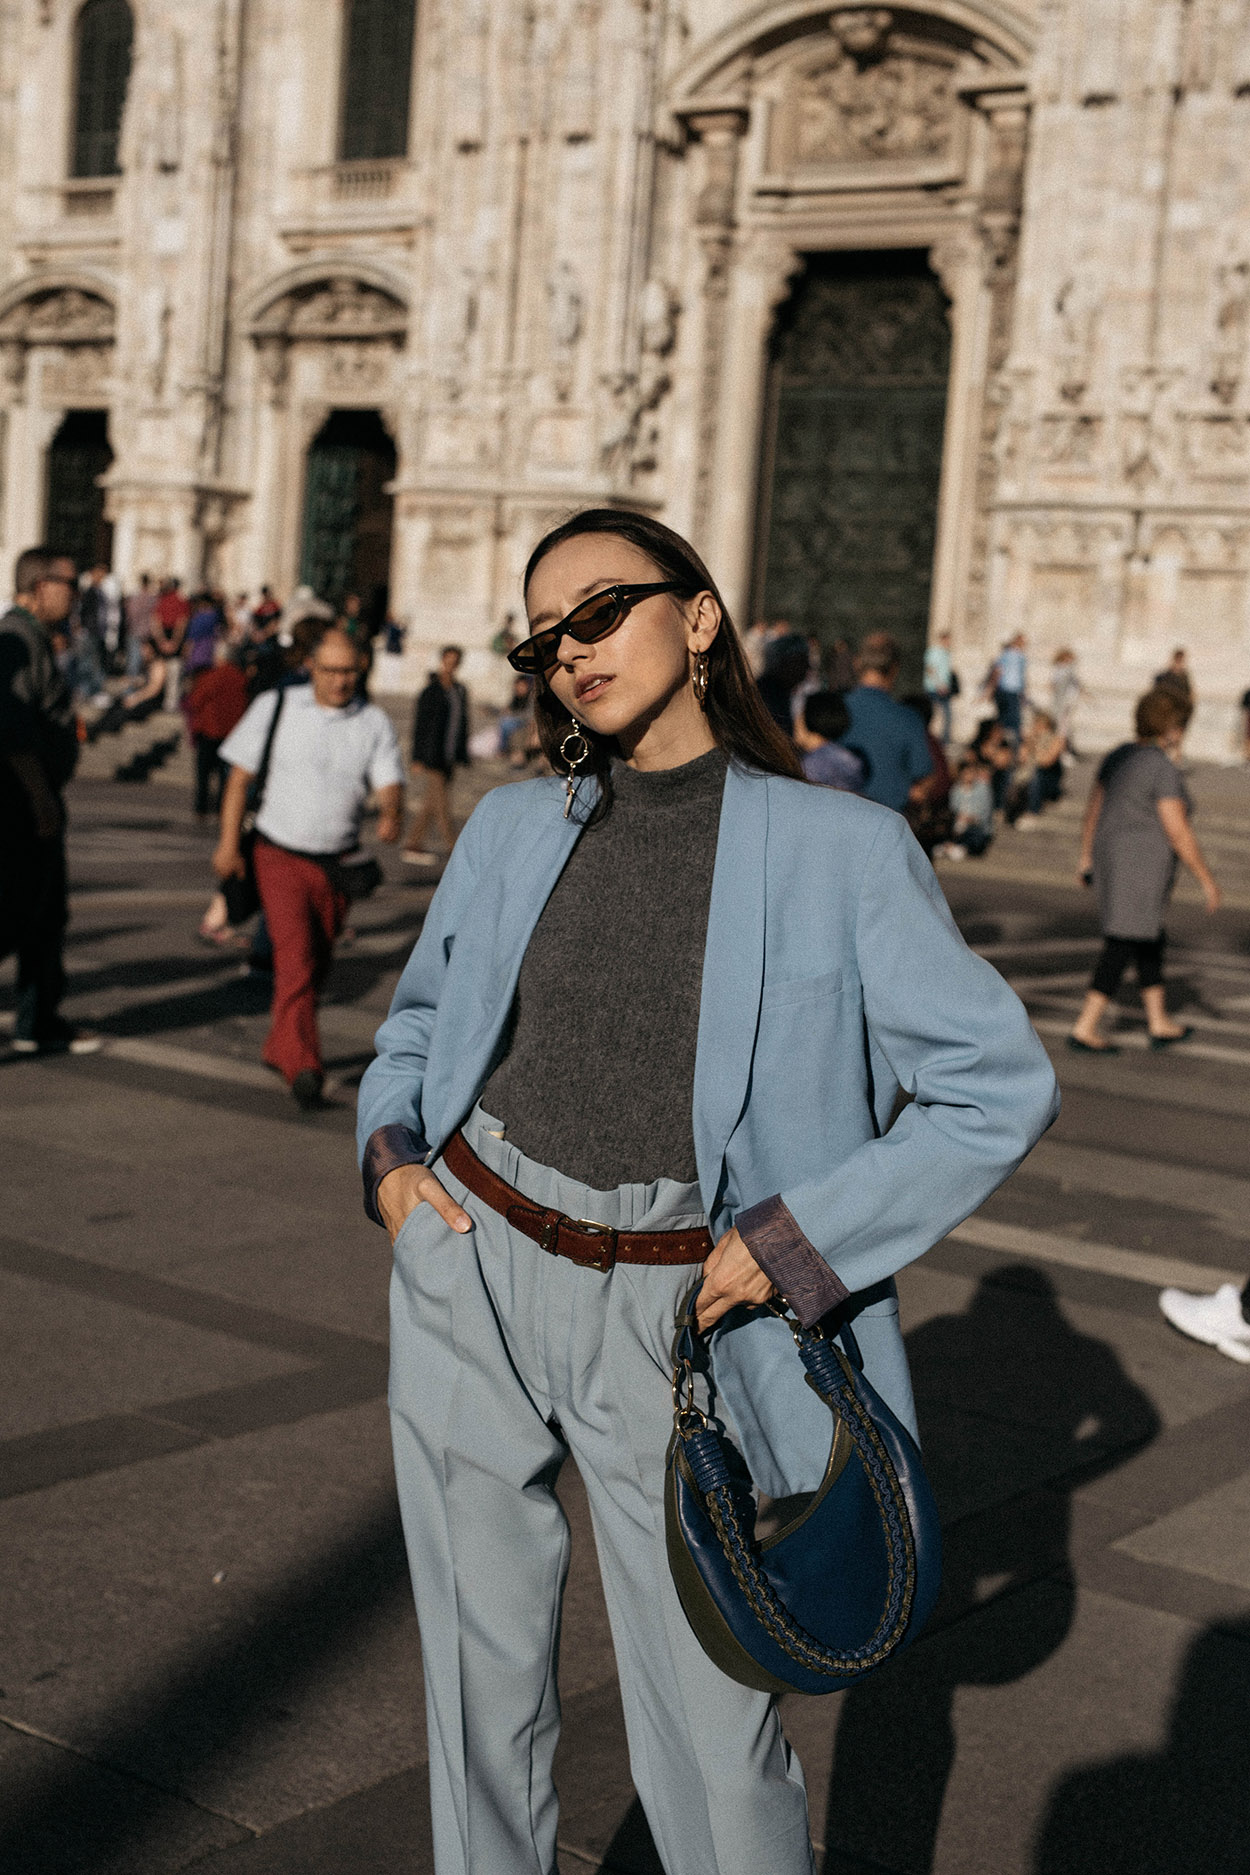 Blue-masculine-suit-trend-fall-winter-2017-balenciaga-matrix-sunglasses-milan-editorial-diane-von-furstenberg-mini-sling-hobo-bag-1.jpg